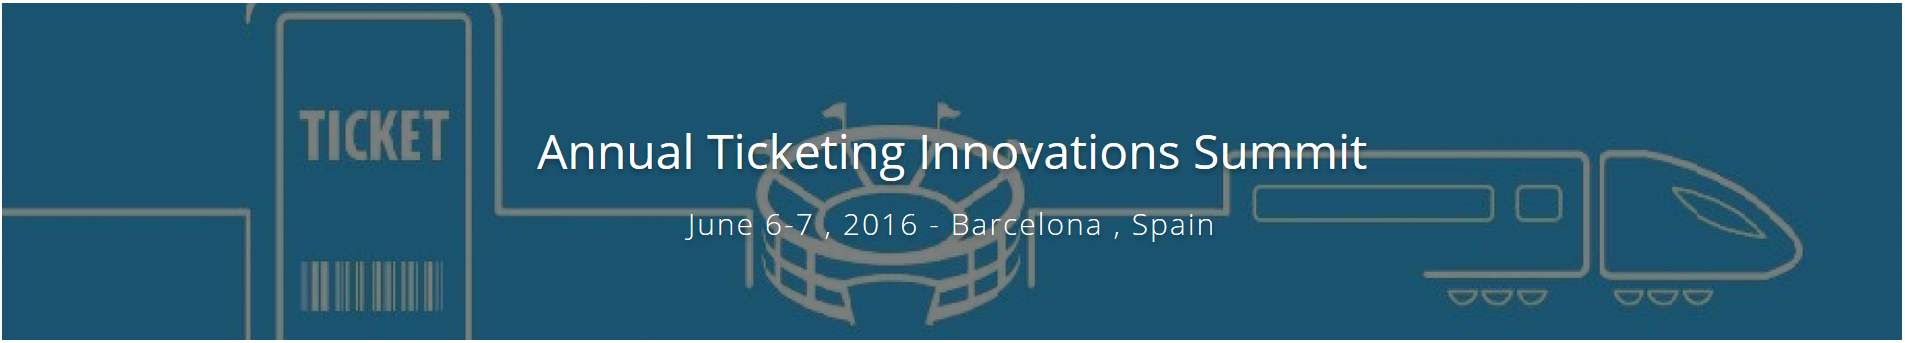 C4B annual ticketing innovations summit